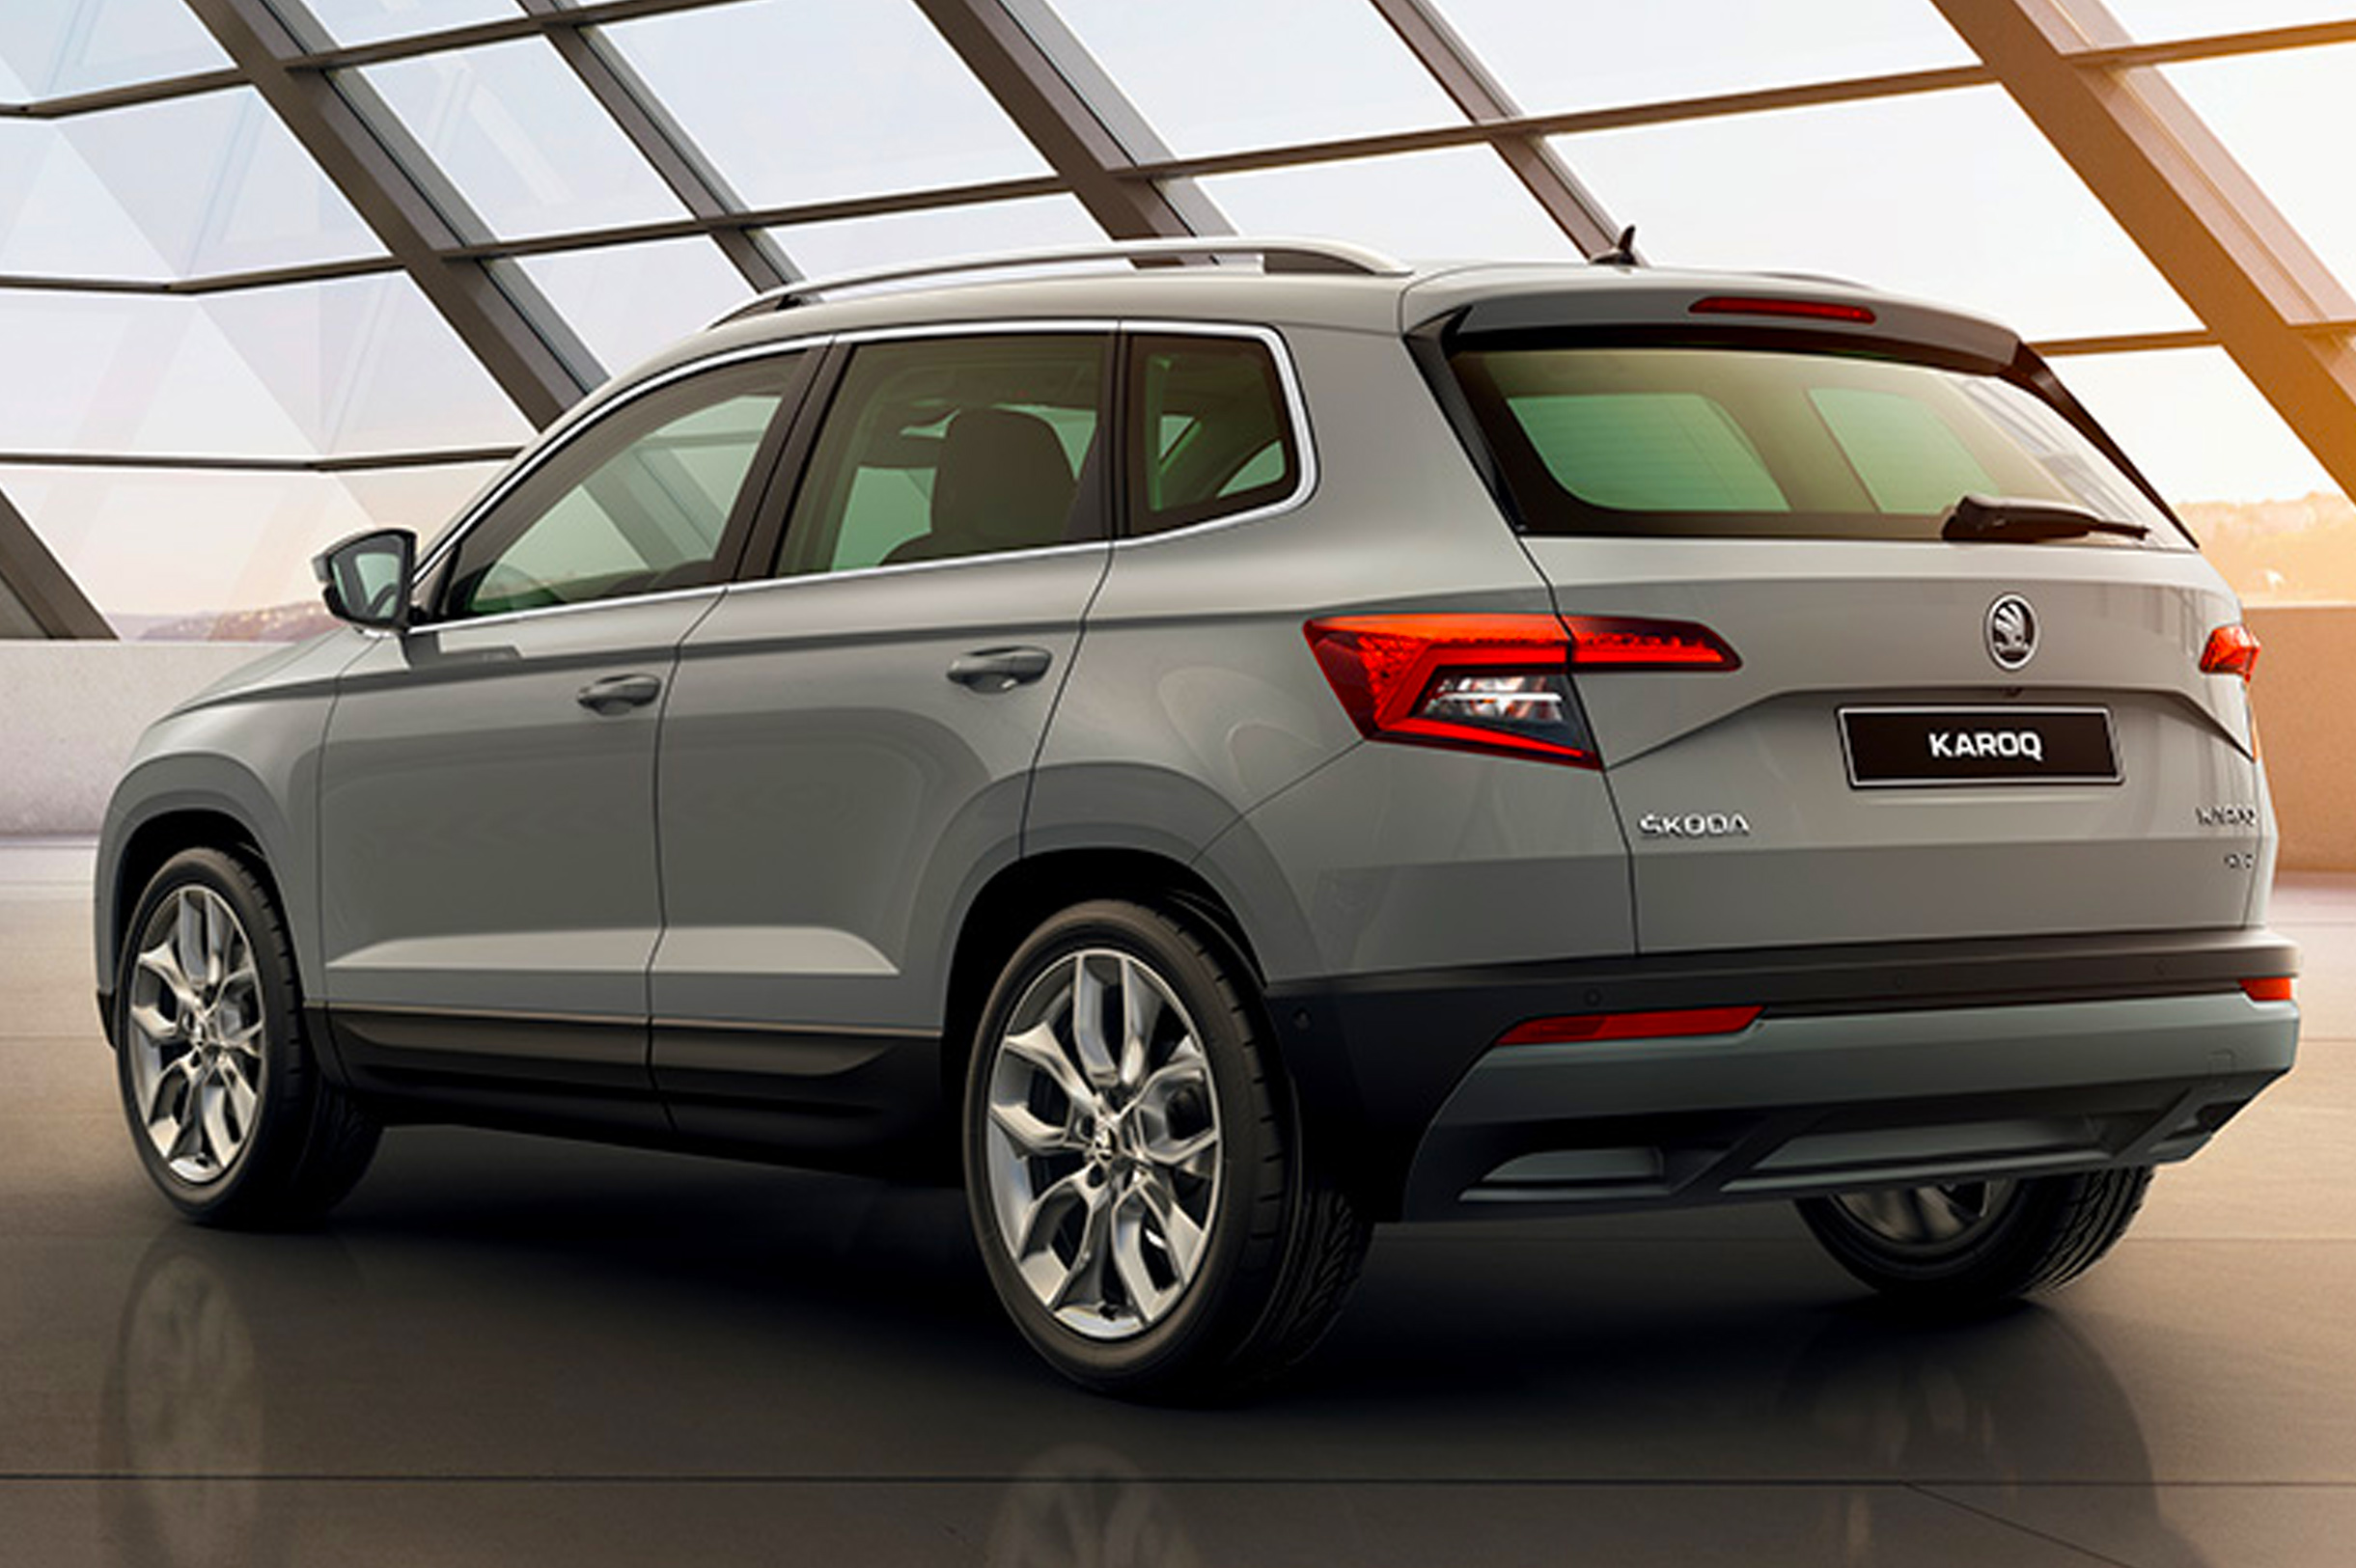 hot car leasing skoda karoq suv 1 6 tdi 115 se 5dr manual